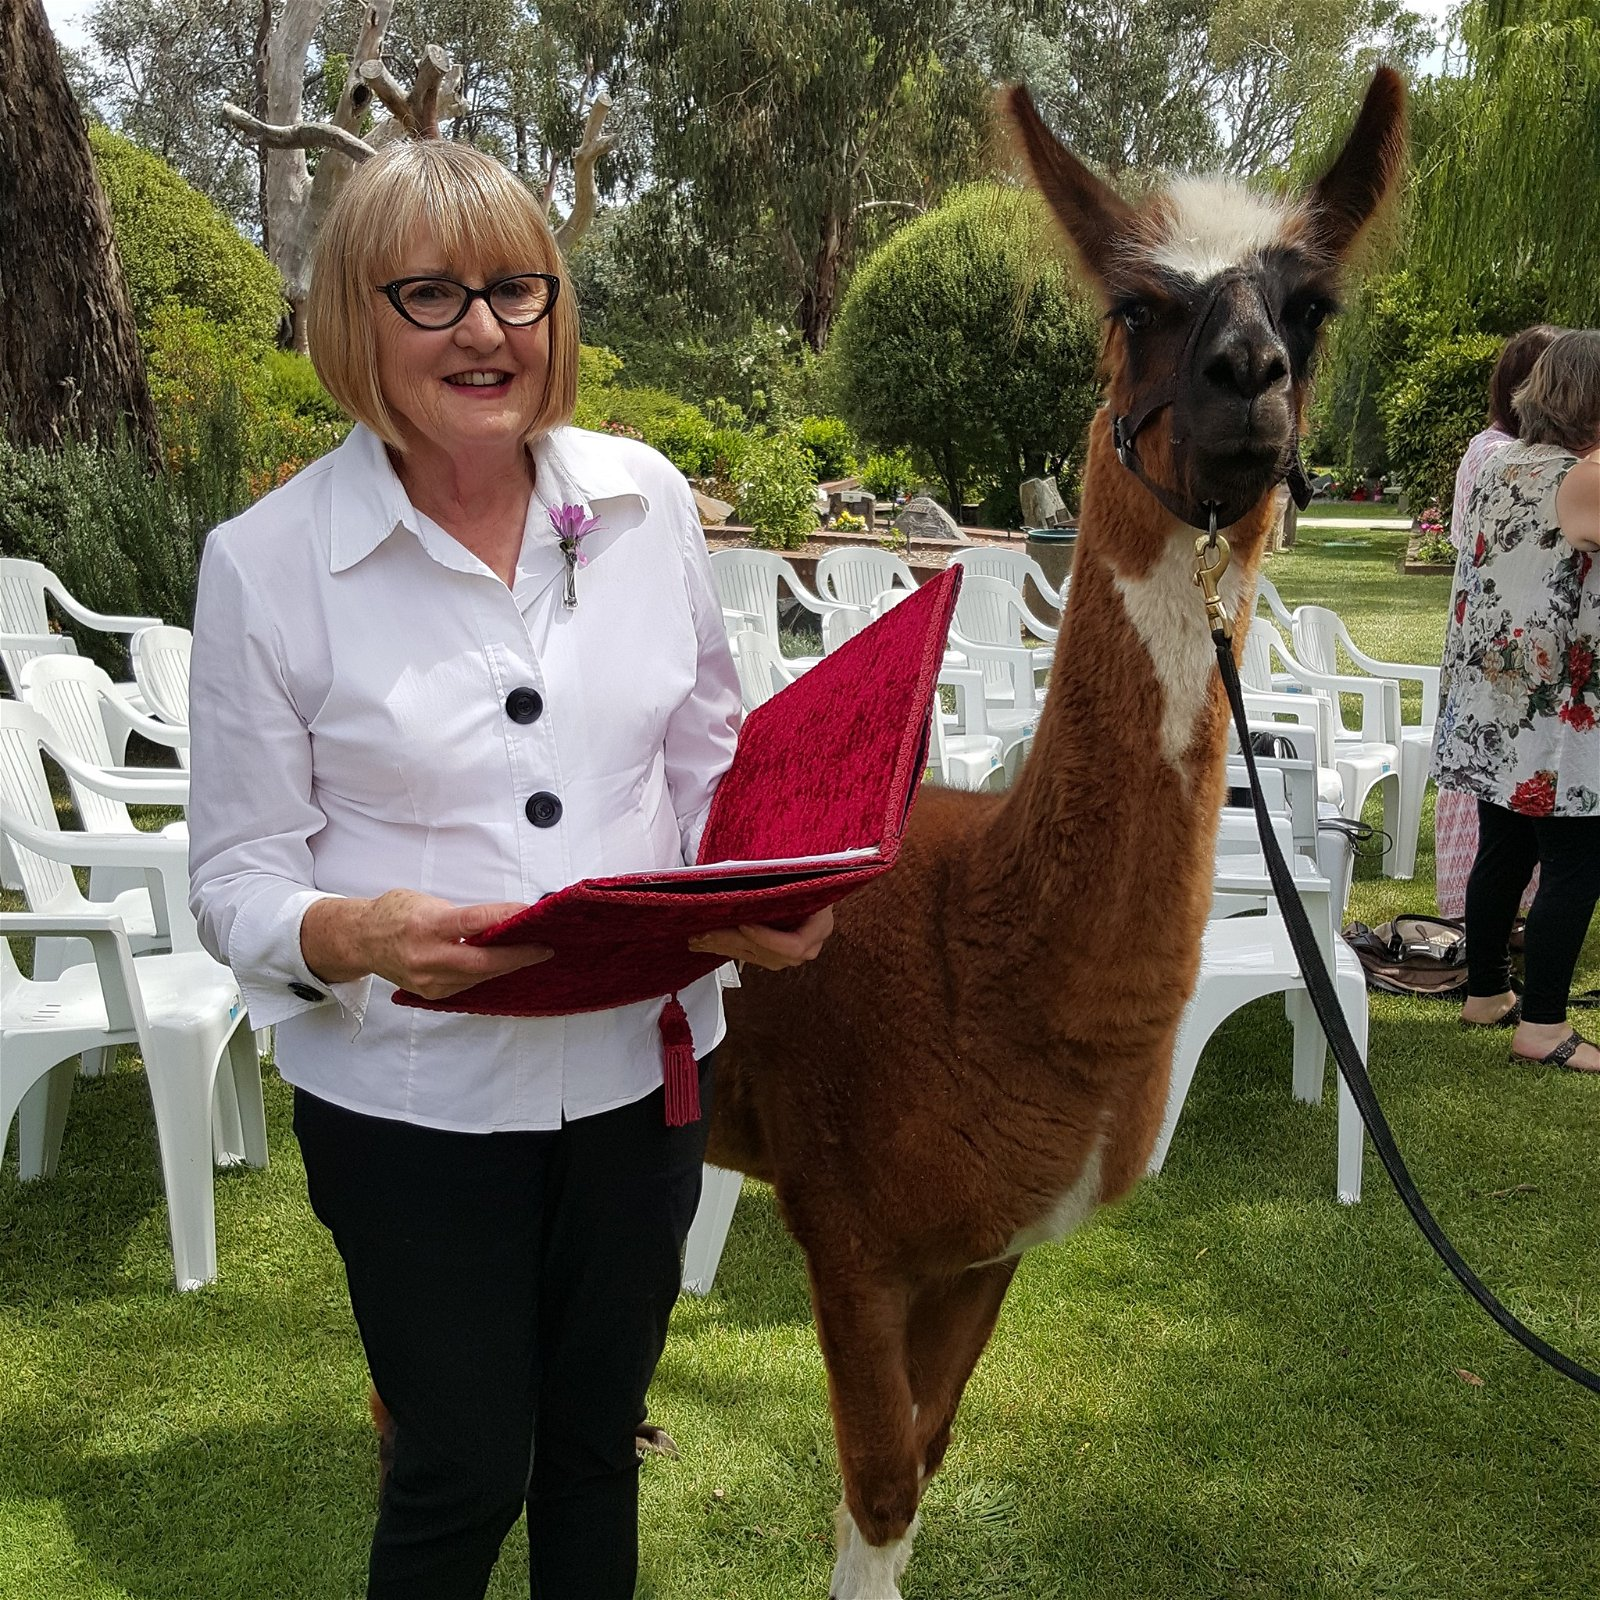 Funeral celebrant Jan Phillips conducts a memorial with a beloved llama present.